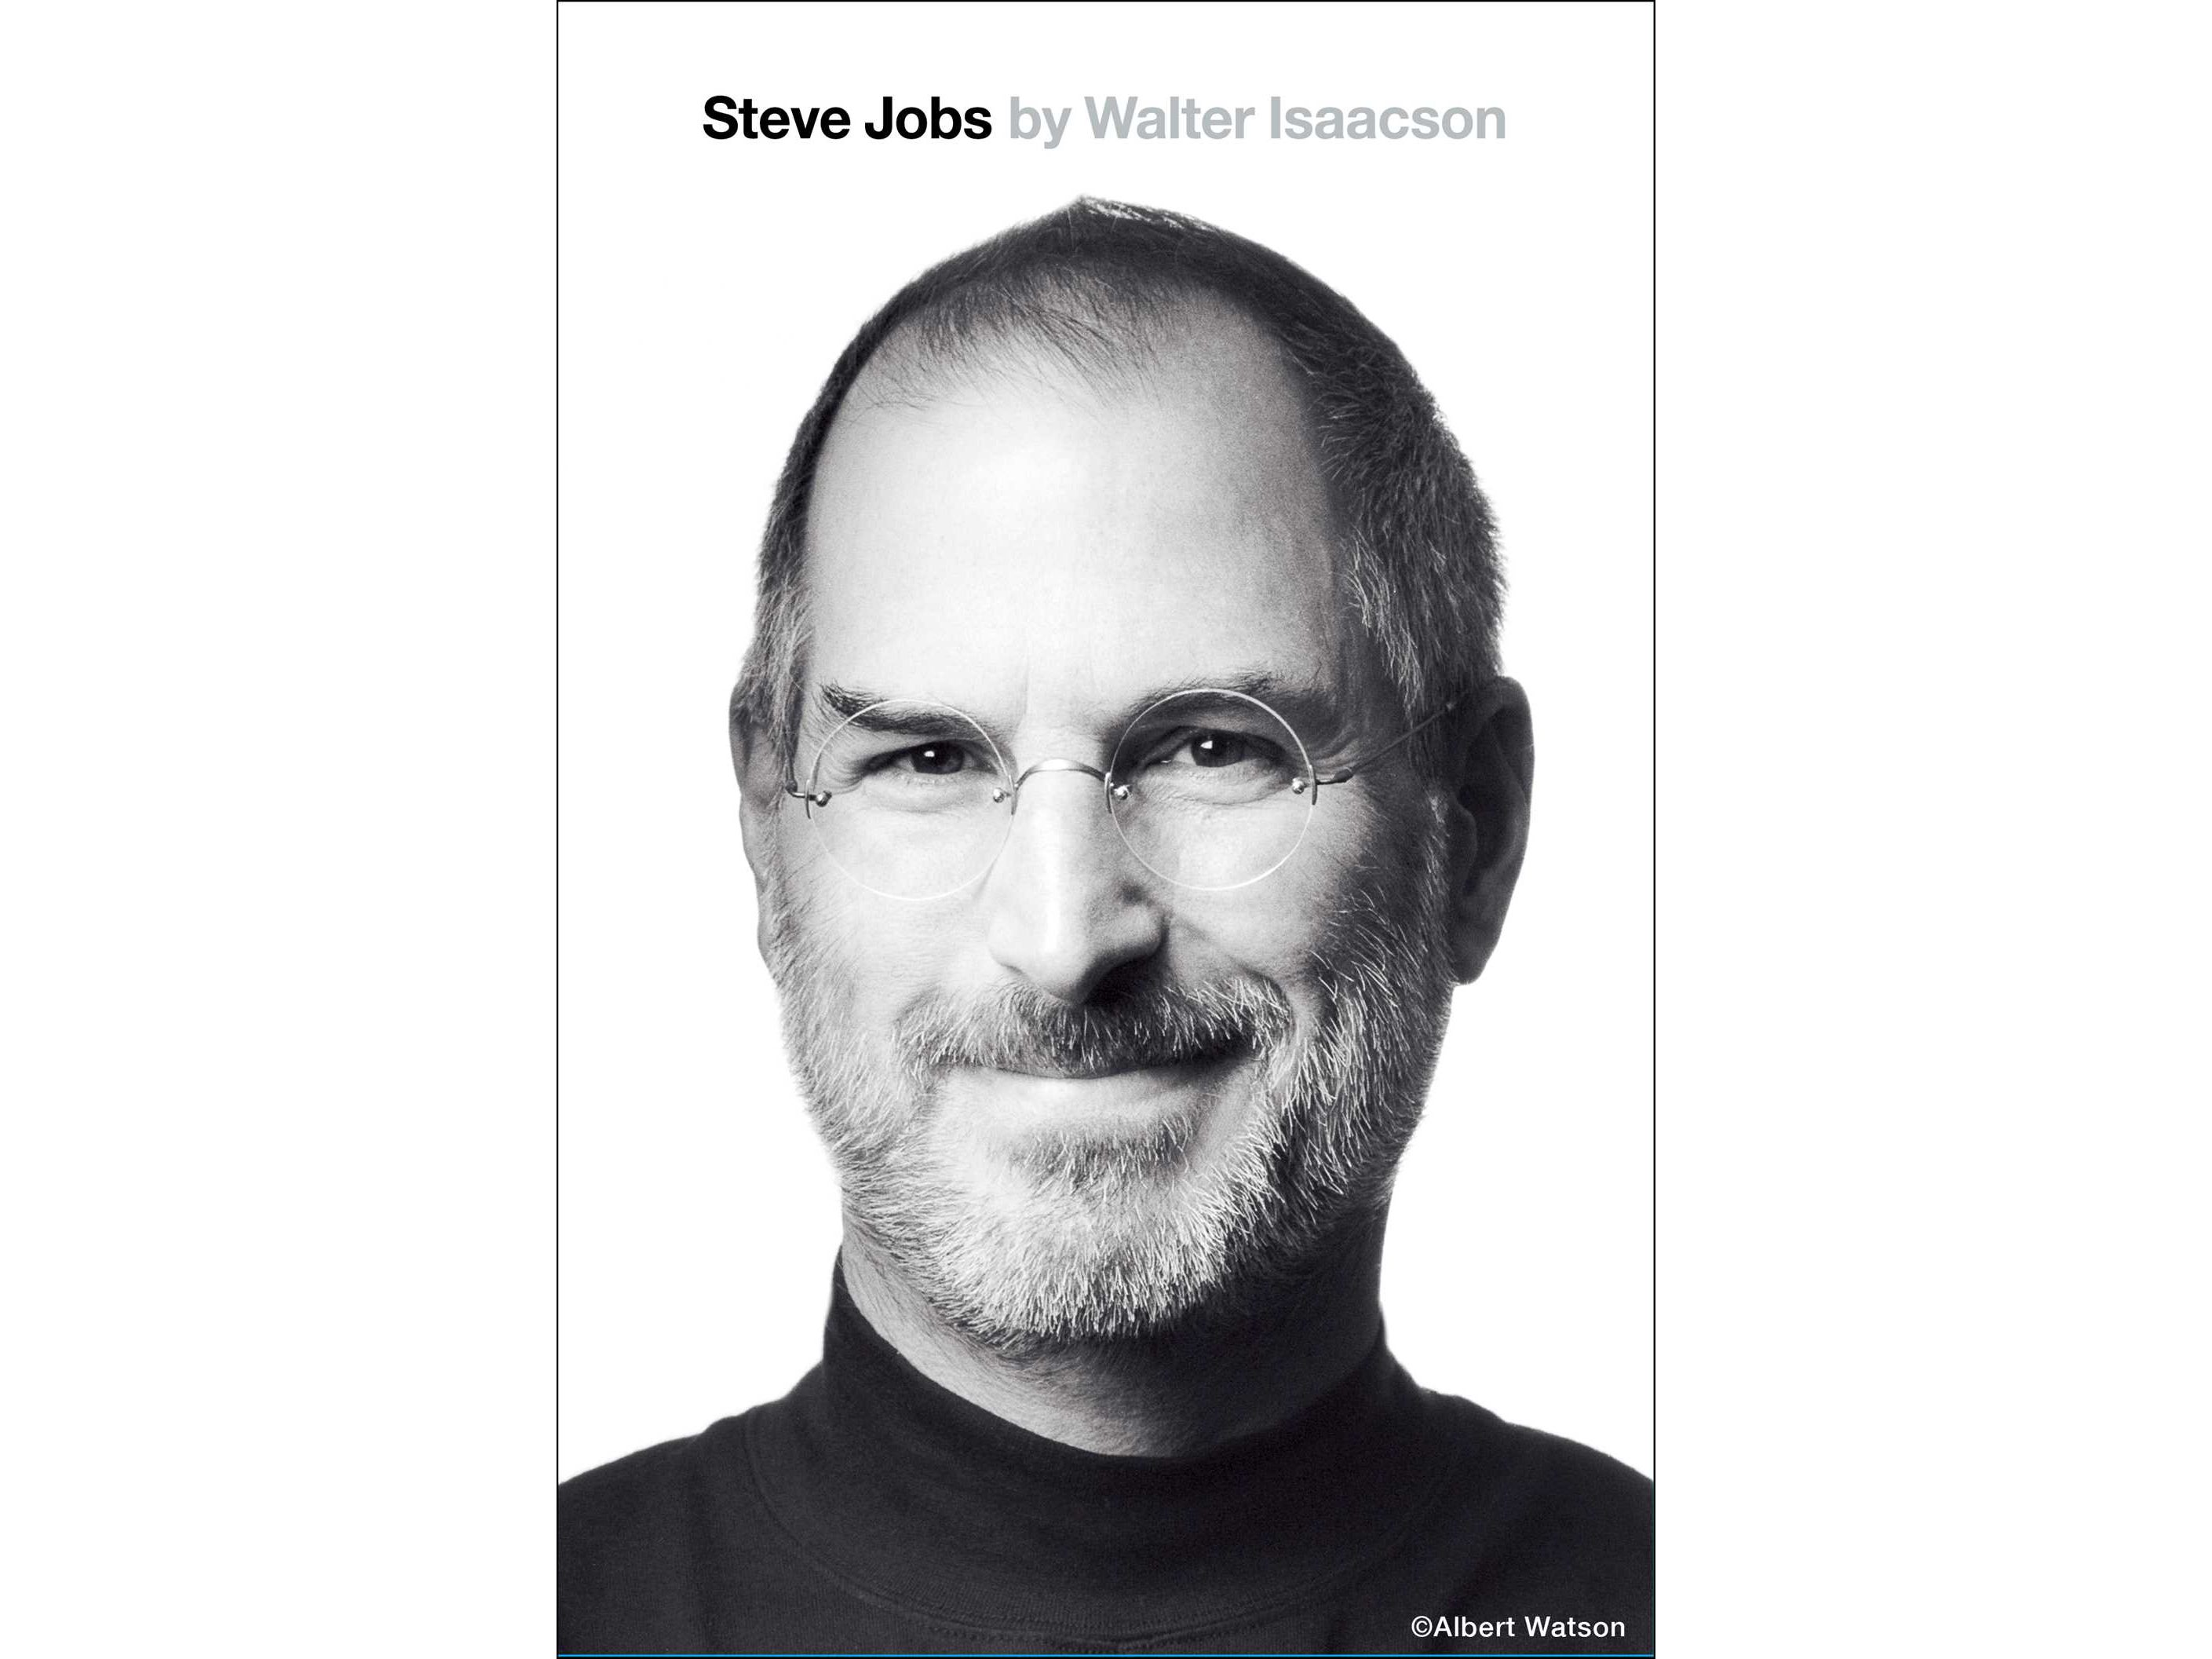 9. Steve Jobs: A Biography by Walter Isaacson